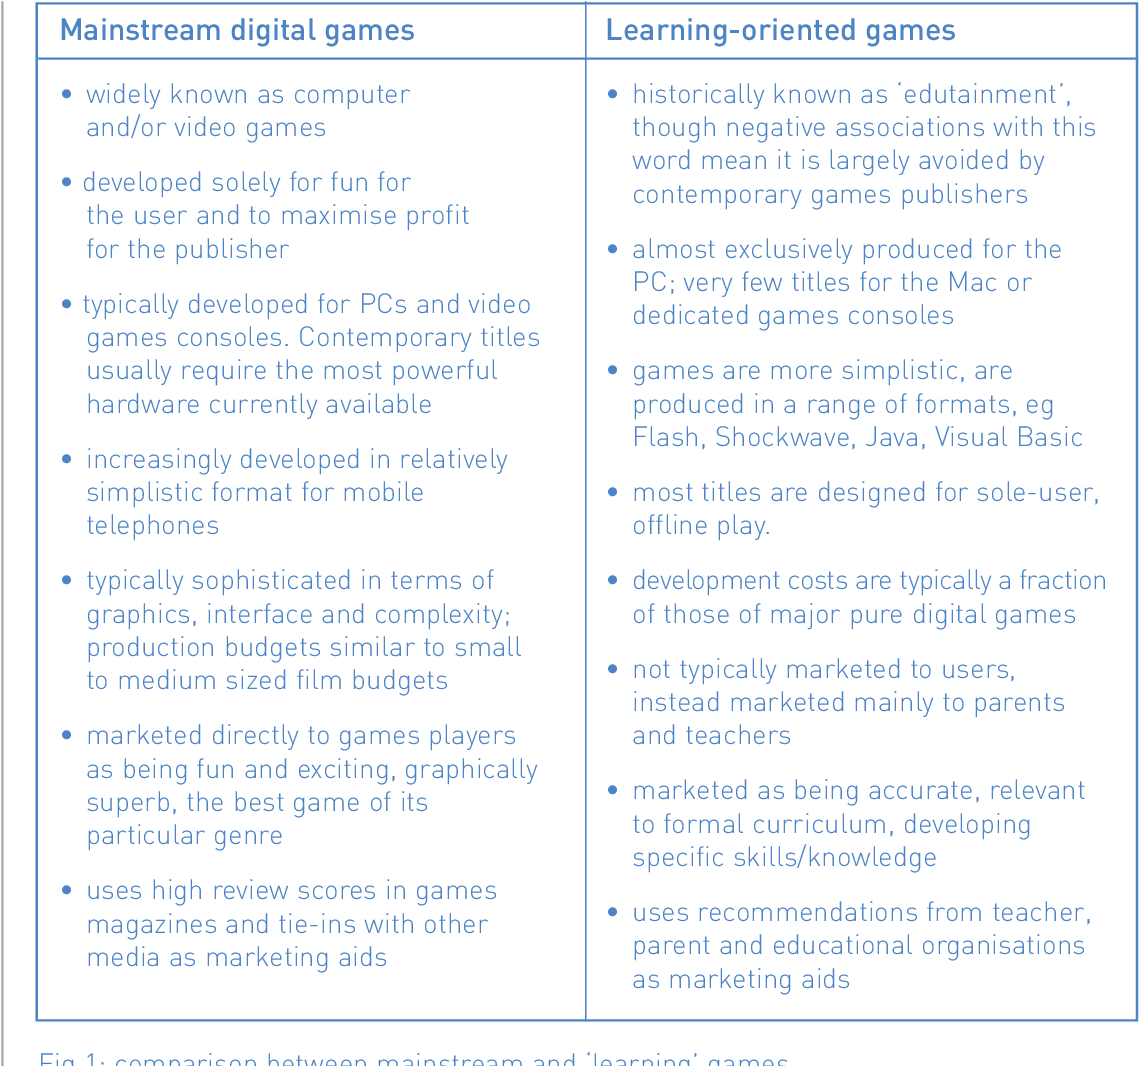 literature review in games and learning kirriemuir